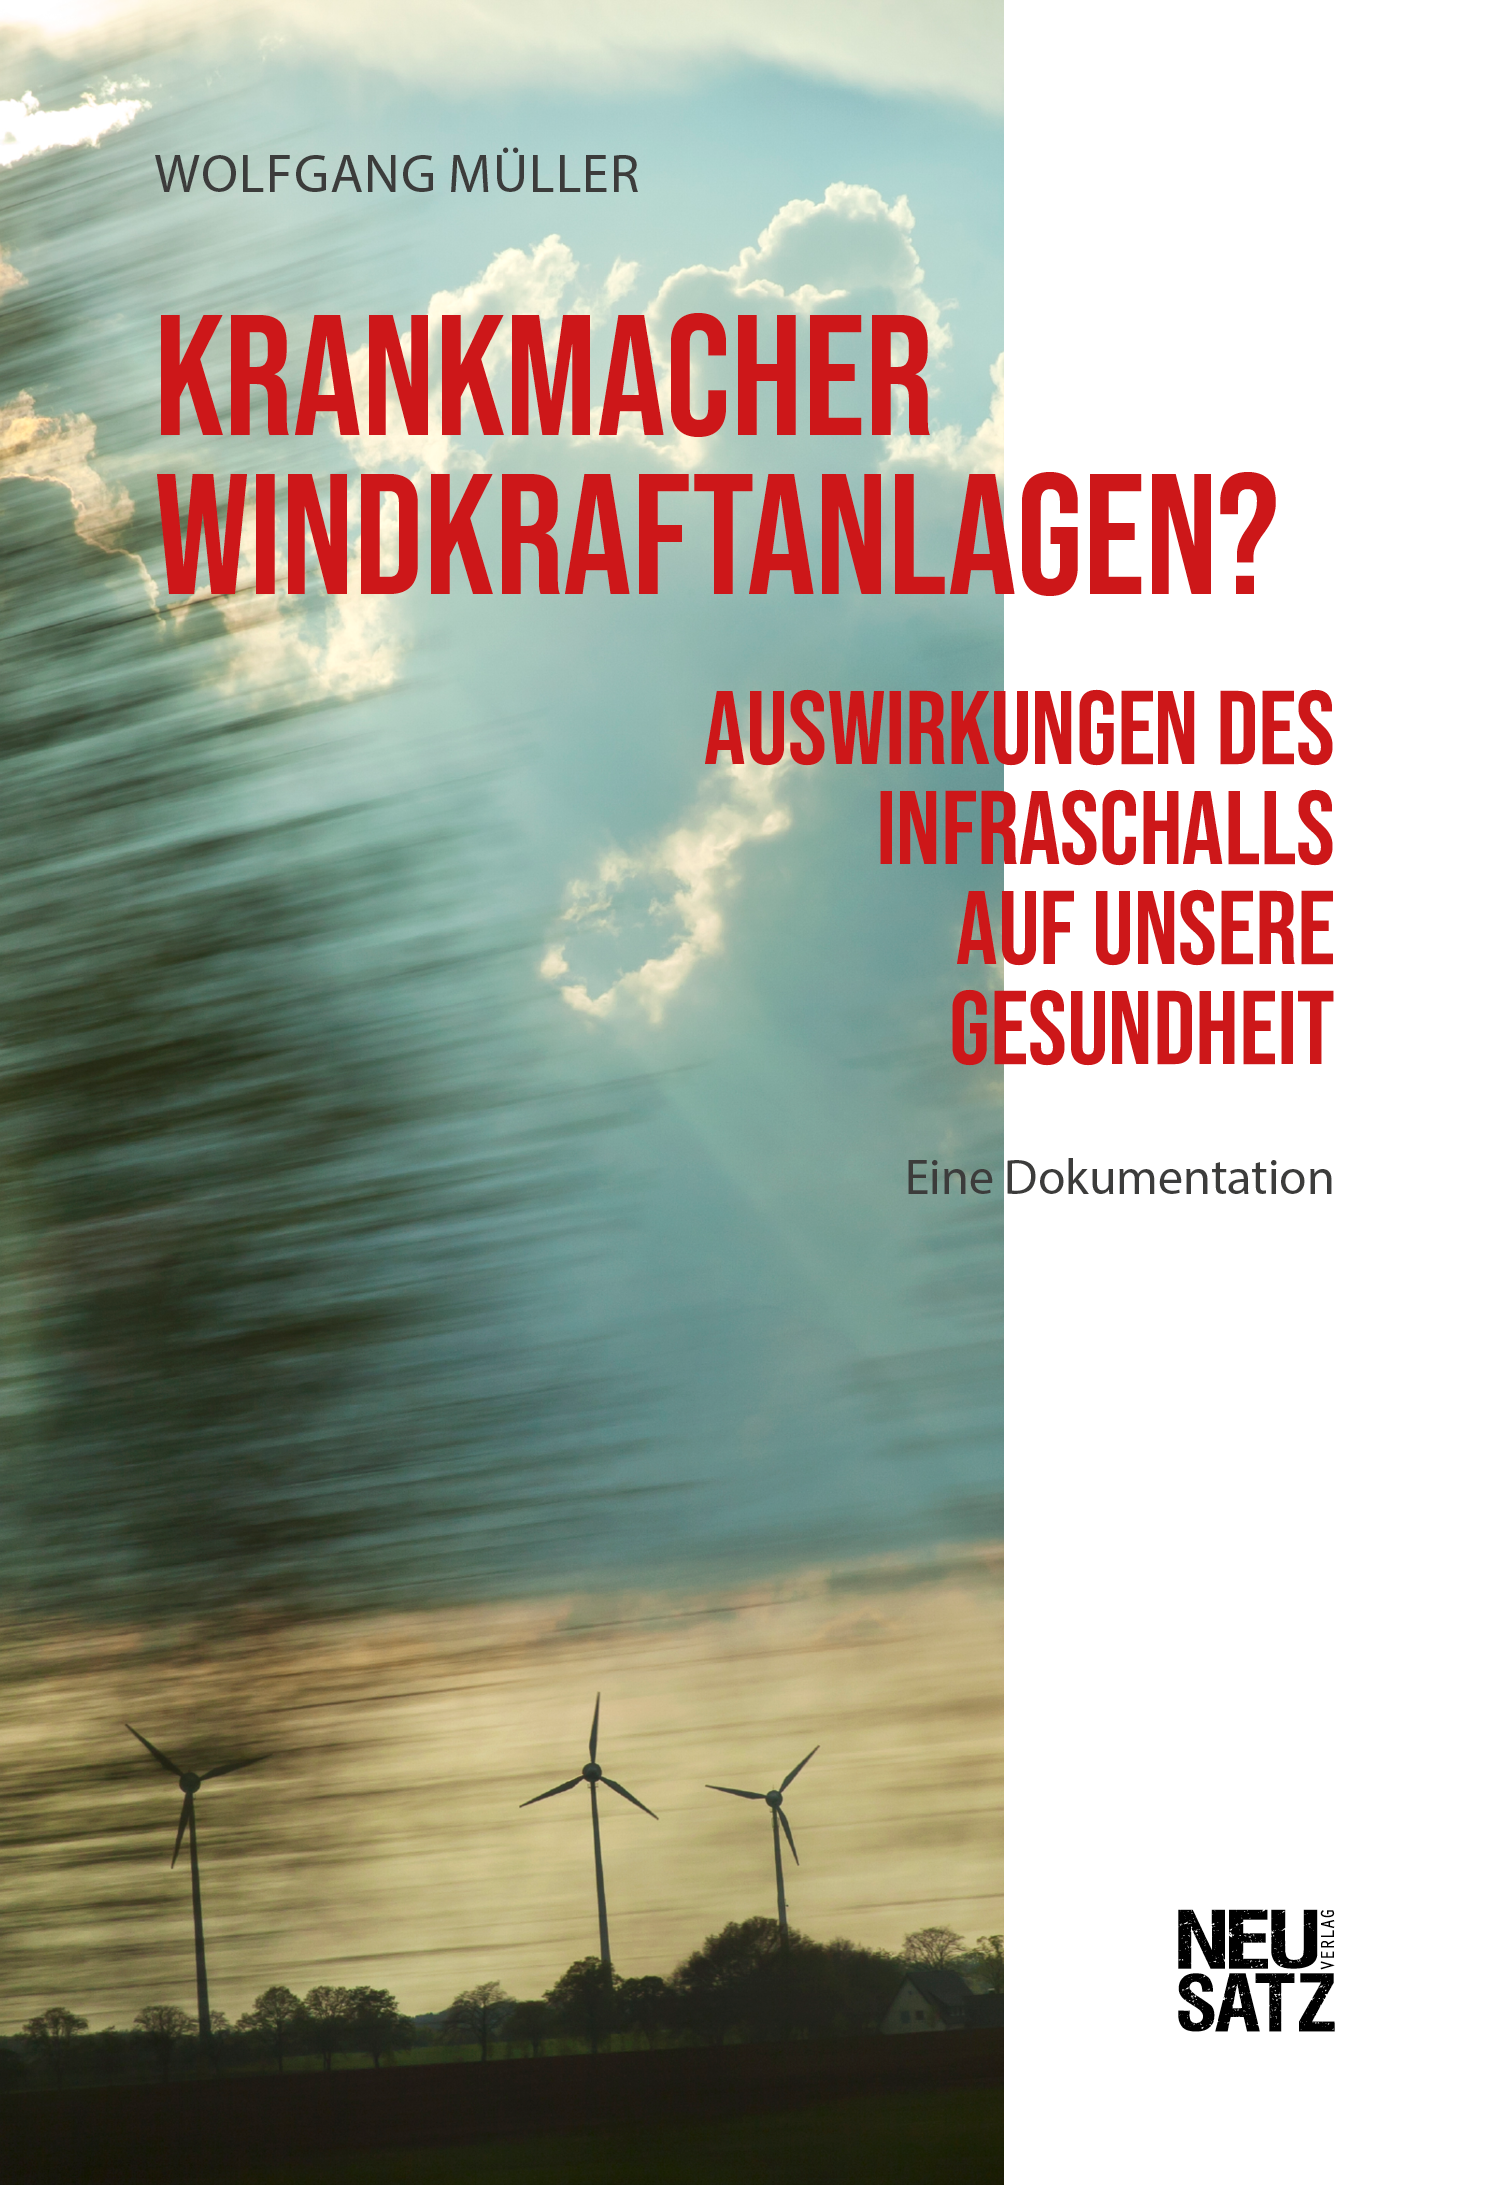 Die Energiewende hat für Mensch und Tier eine besorgniserregende Entwicklung genommen.